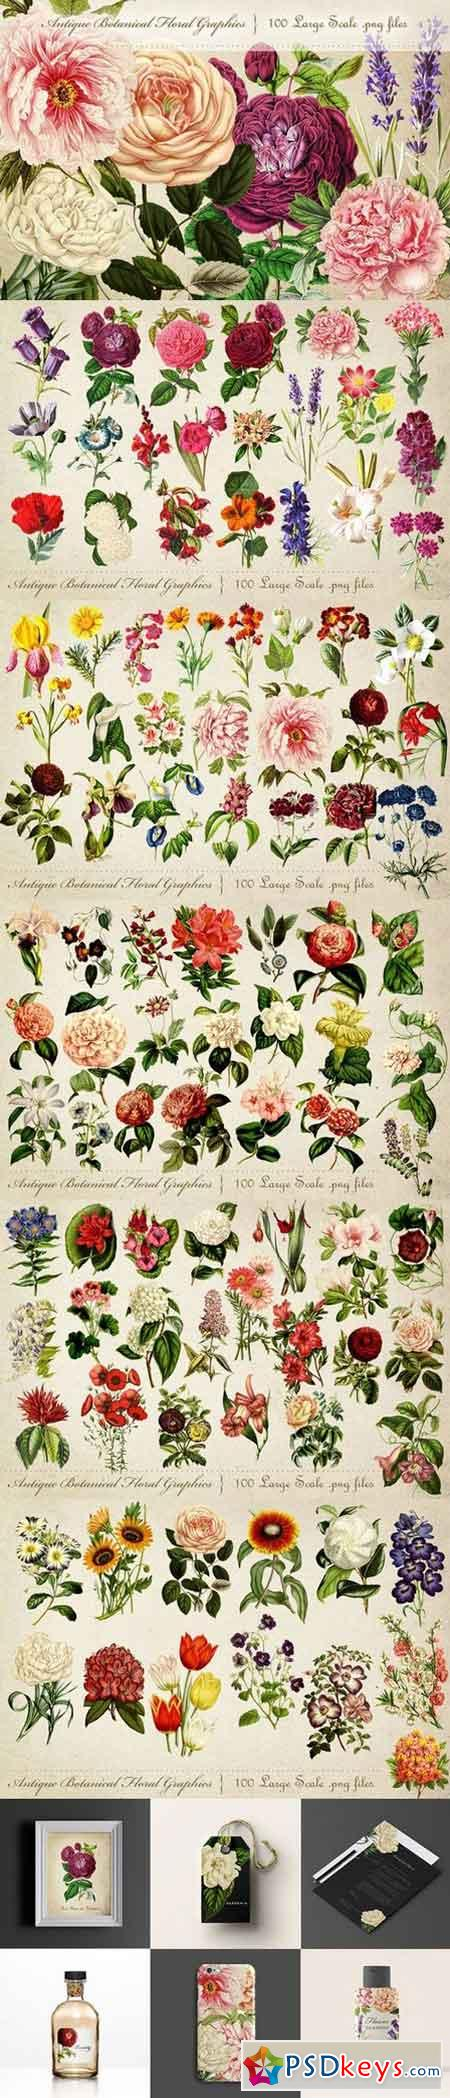 Antique Botanical Floral Graphics 697852